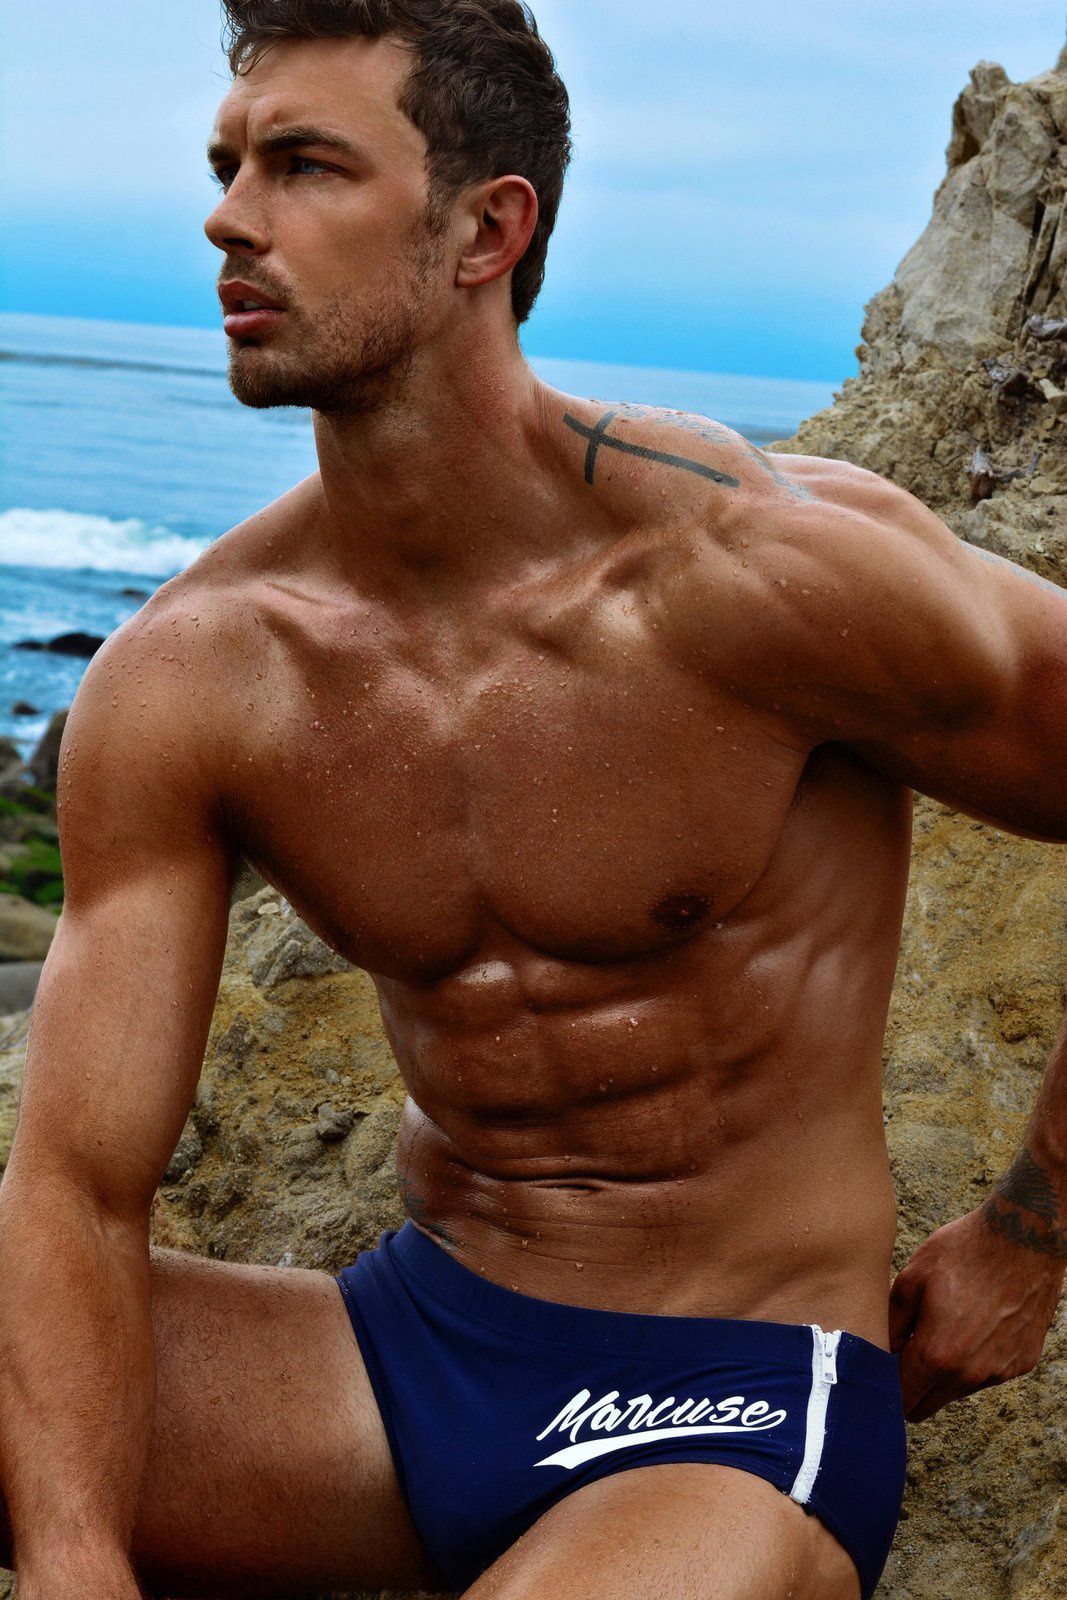 MARCUSE new campaign feat. Christian H.